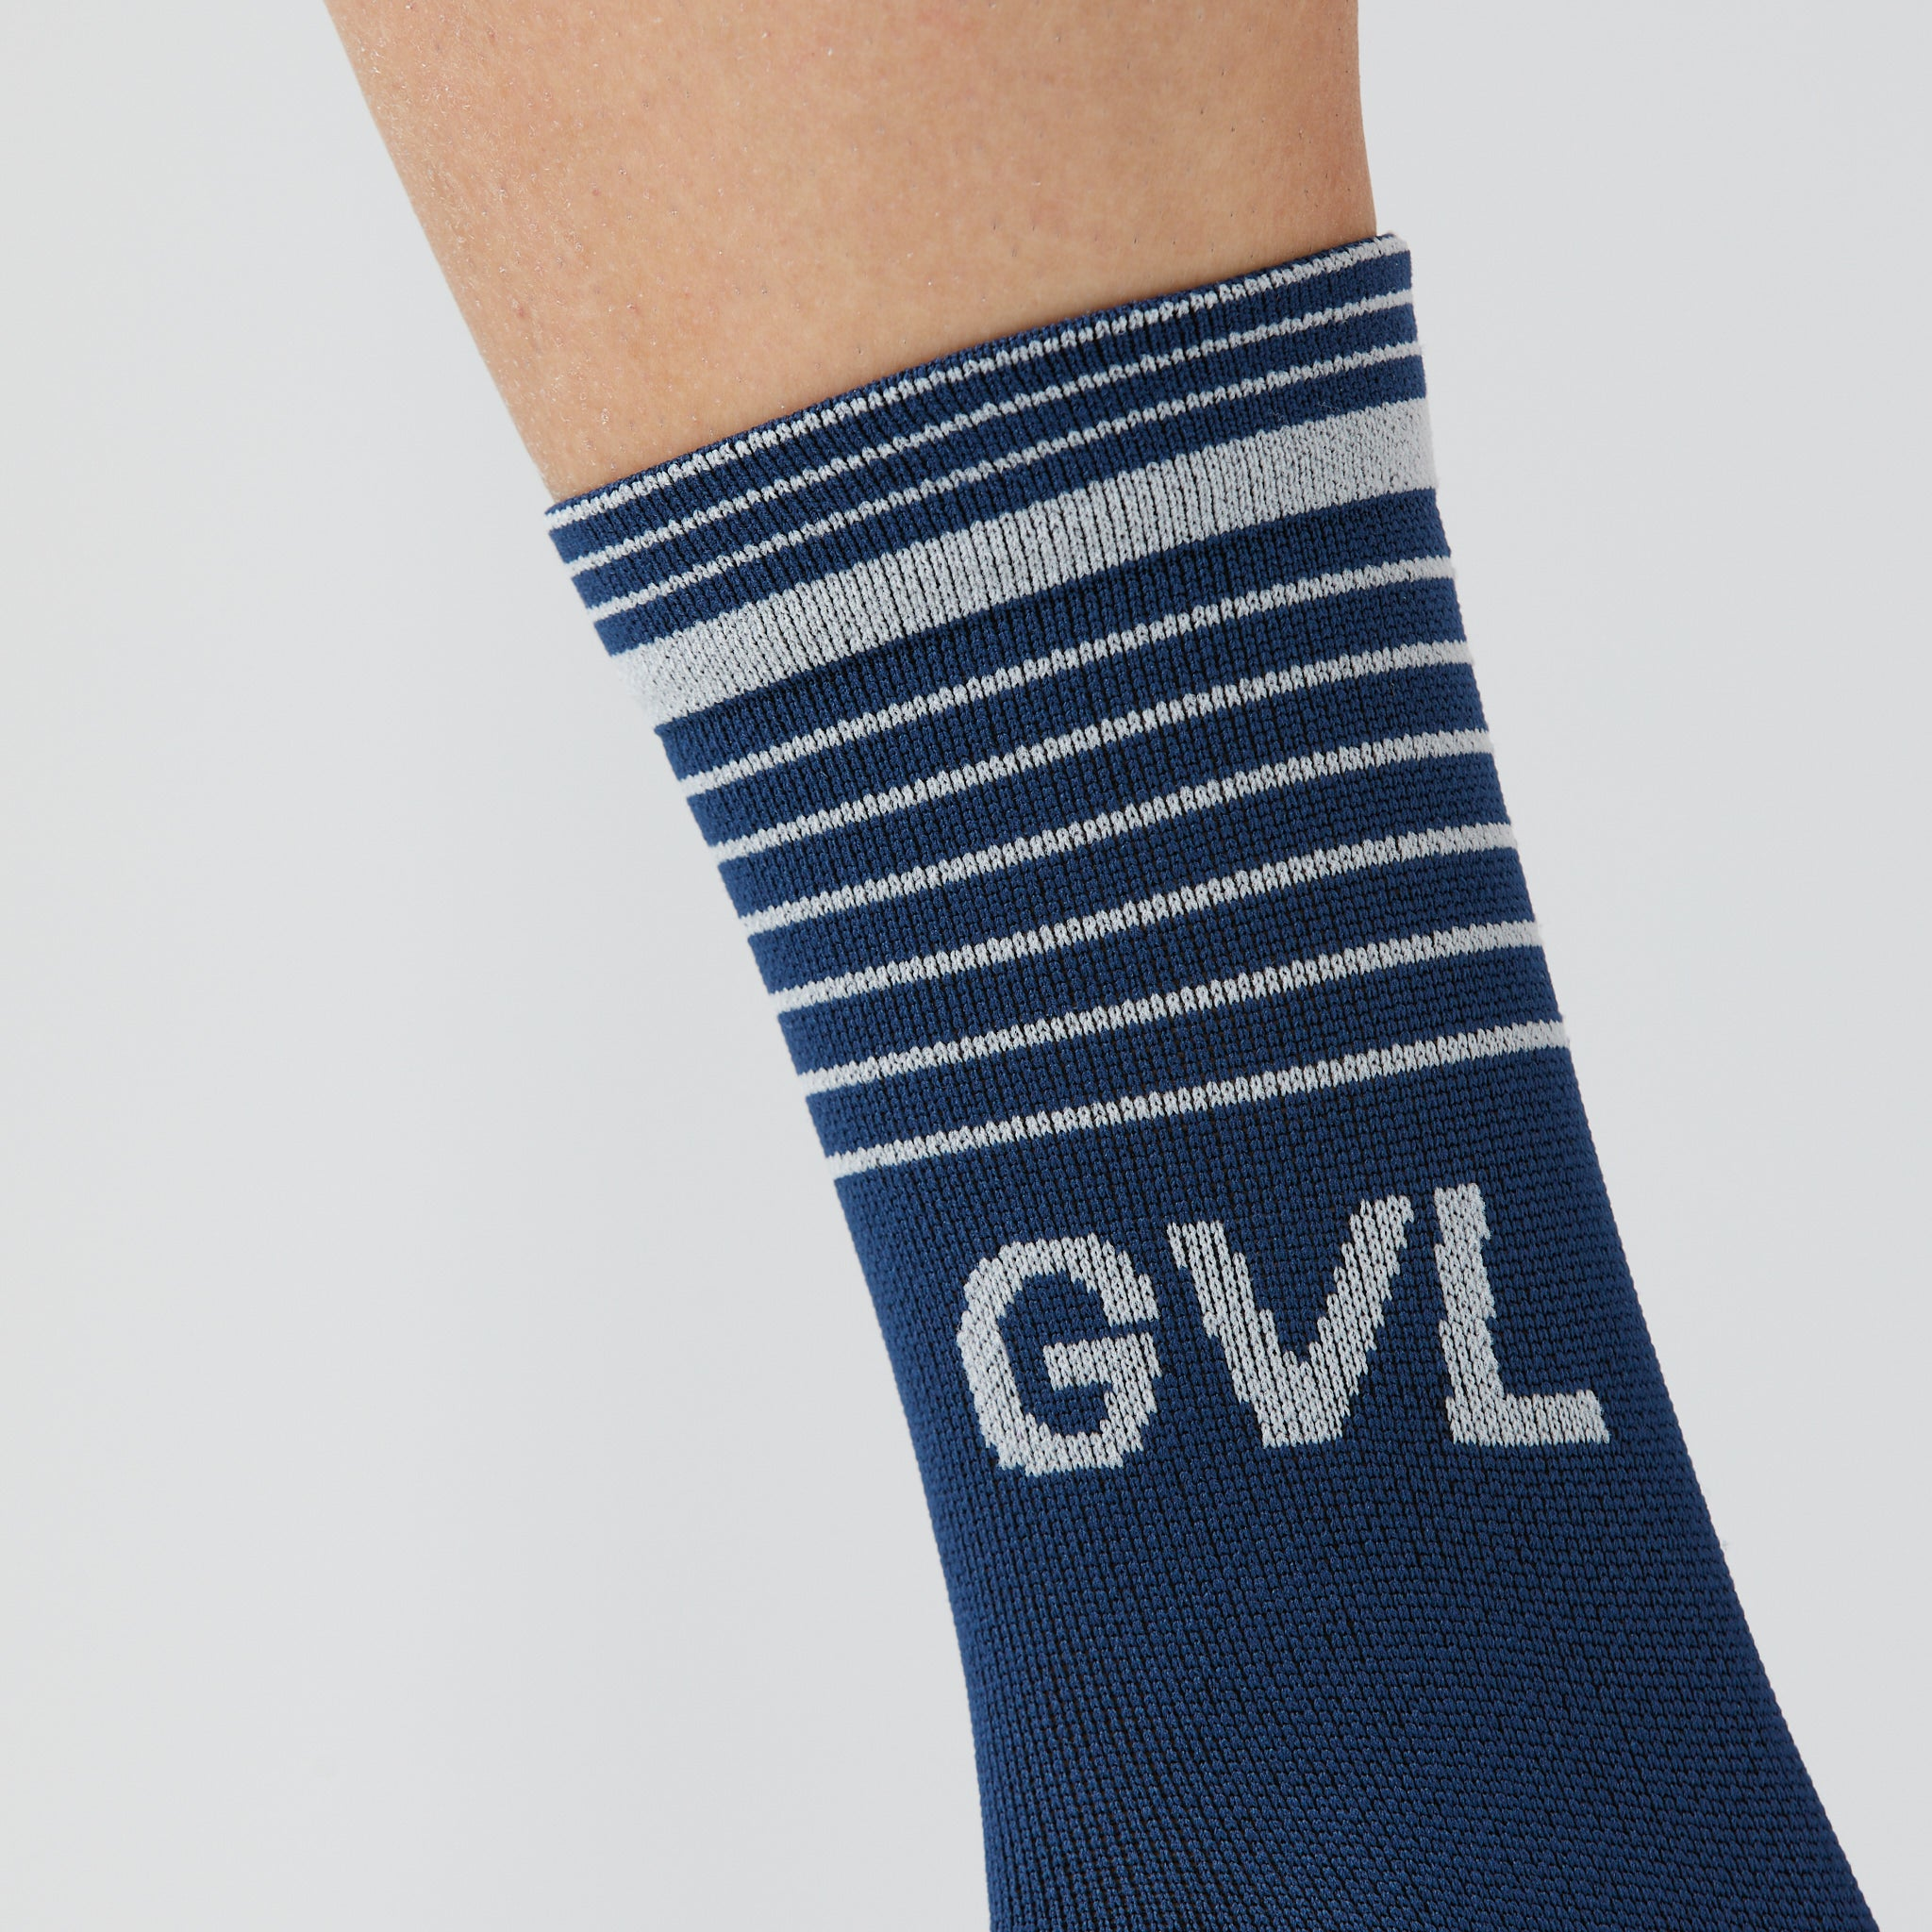 givelo | G-Socks - Striped Navy